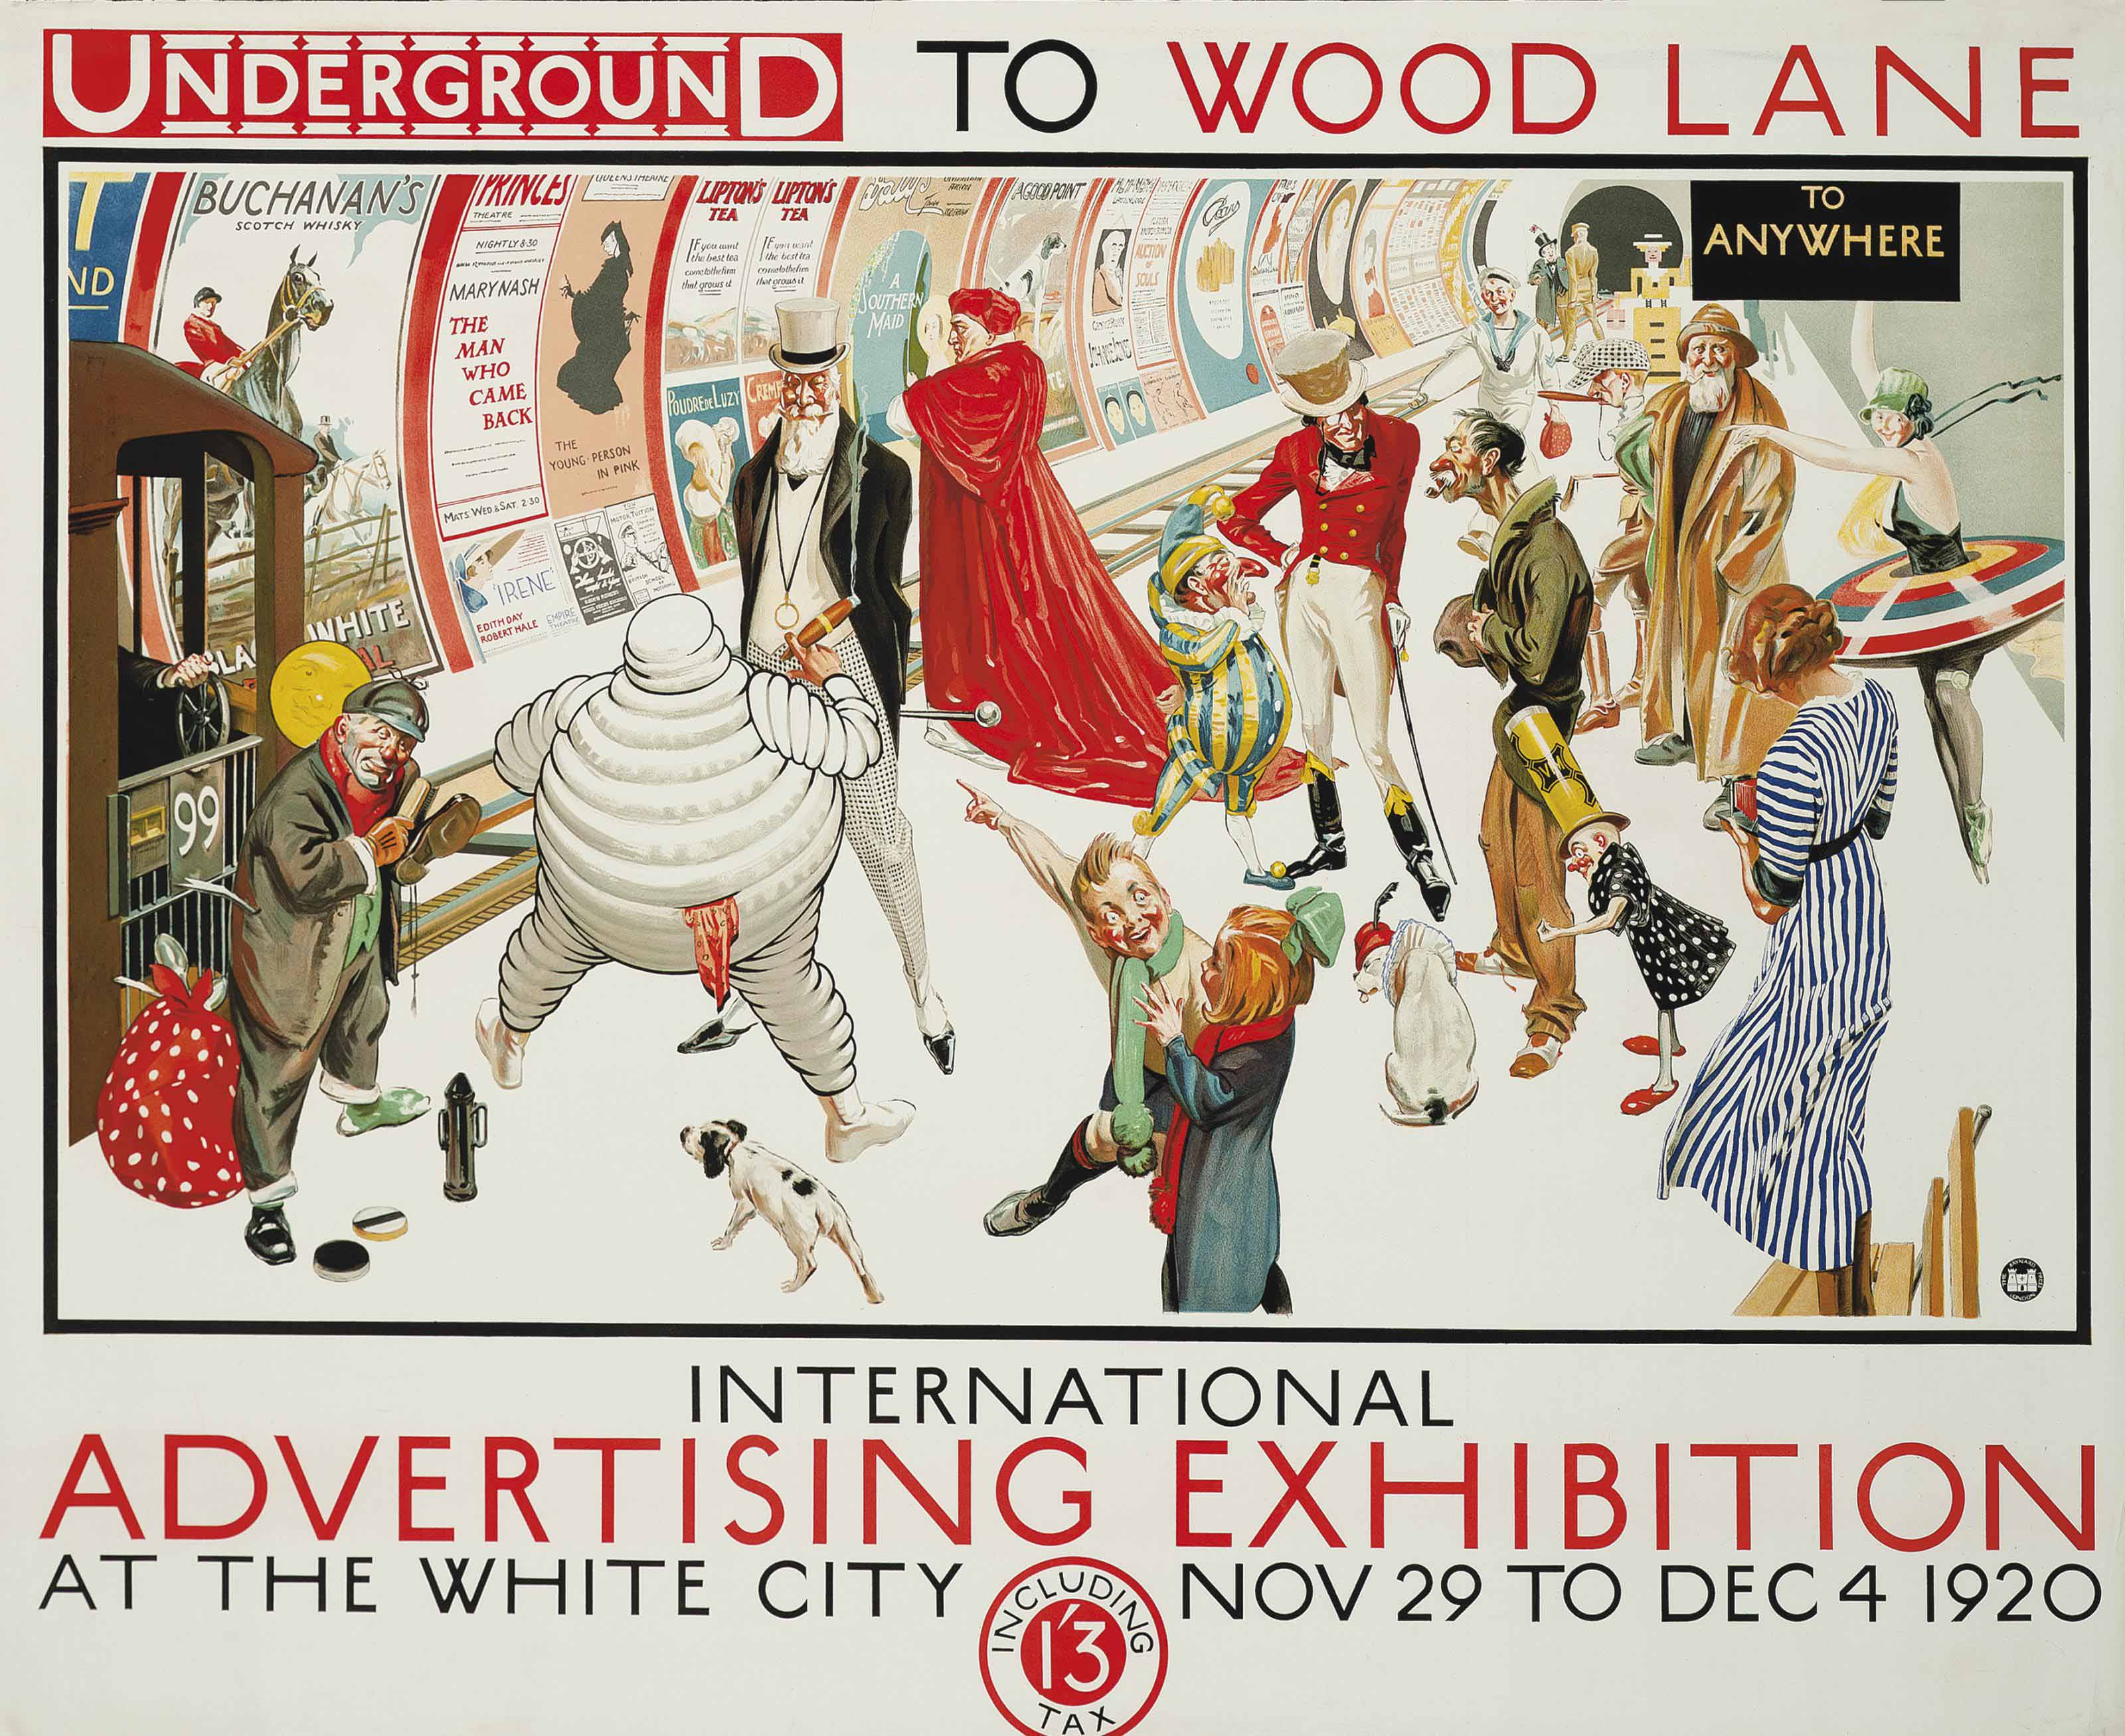 INTERNATIONAL ADVERTISING EXHIBITION